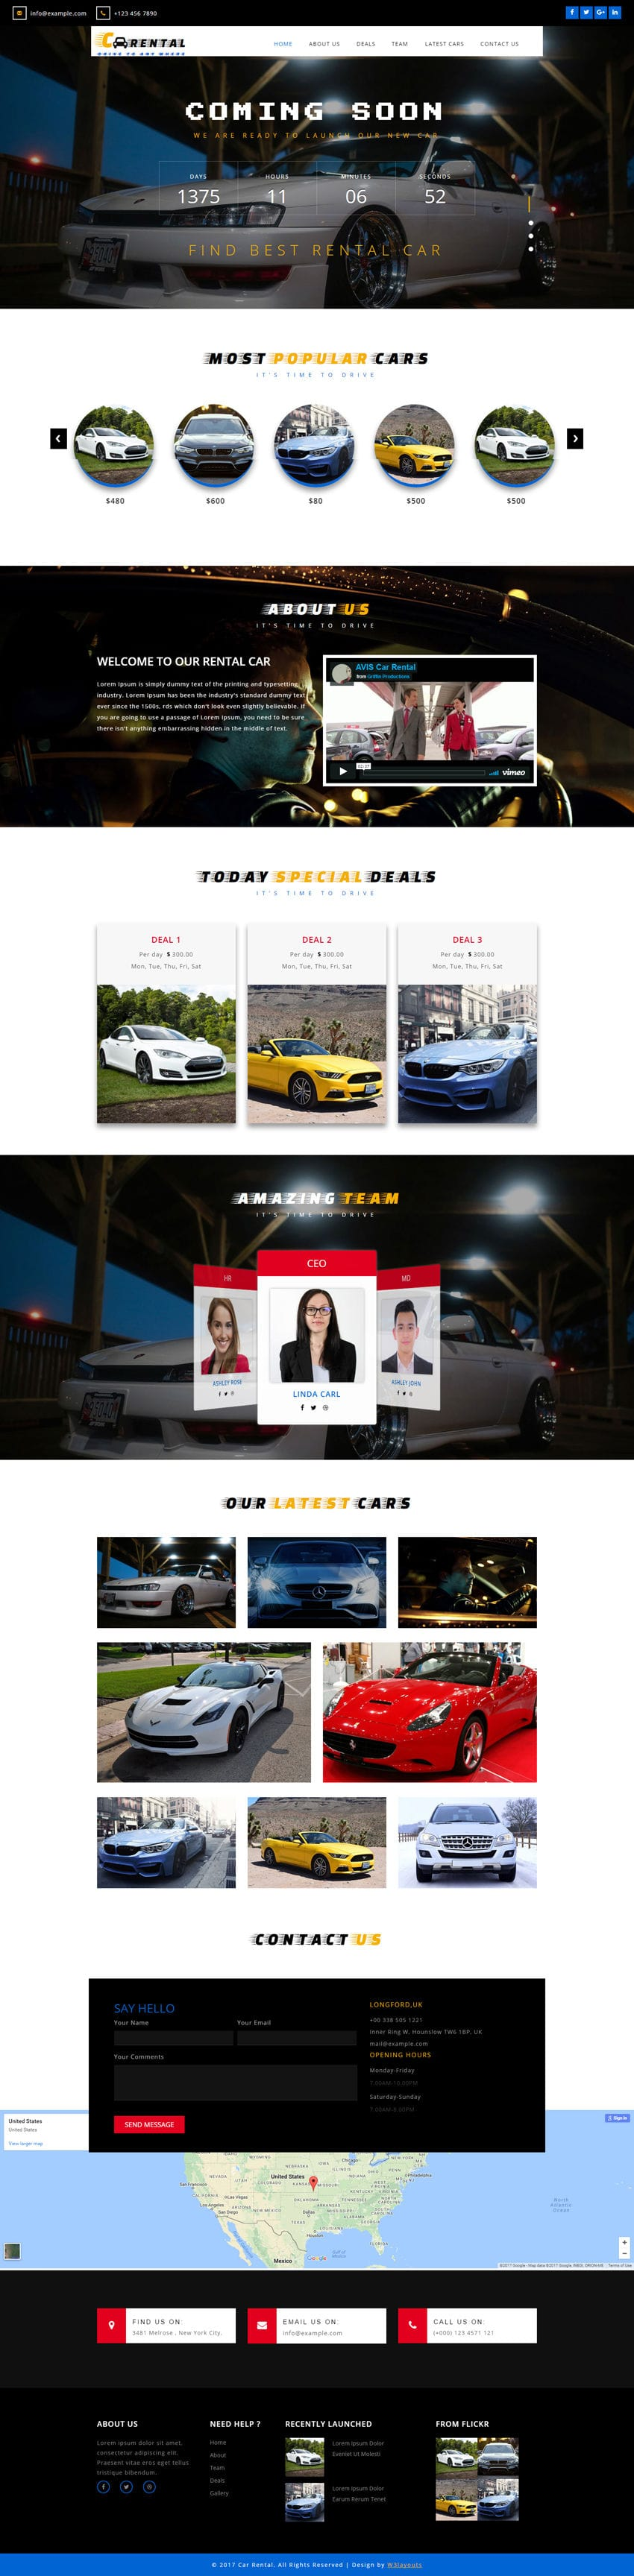 Car rental an autos and transportation flat bootstrap responsive web car rental an autos and transportation flat bootstrap responsive web template maxwellsz